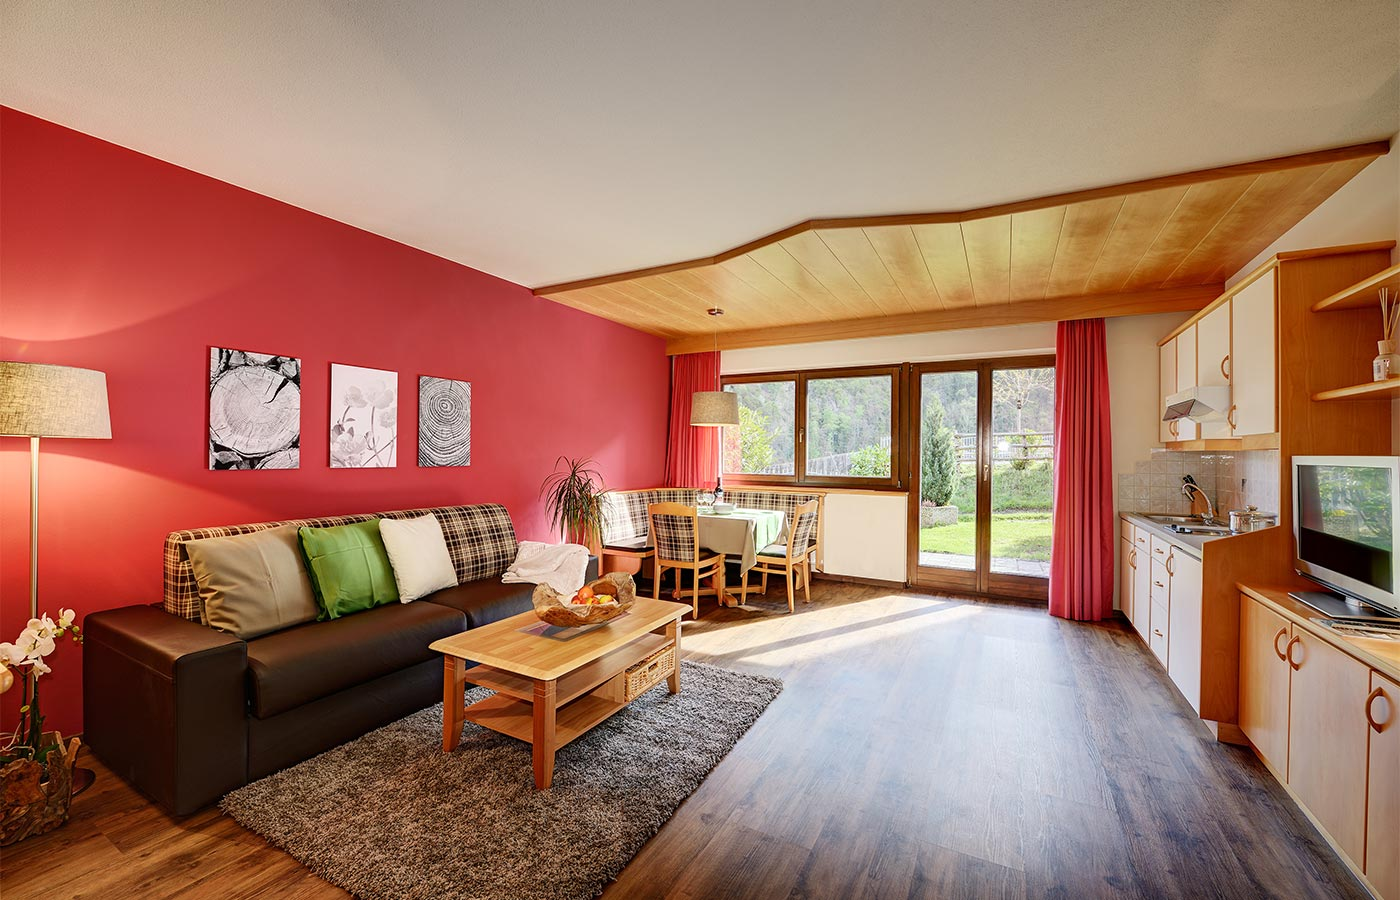 Living room of an apartment in the Alpenhof